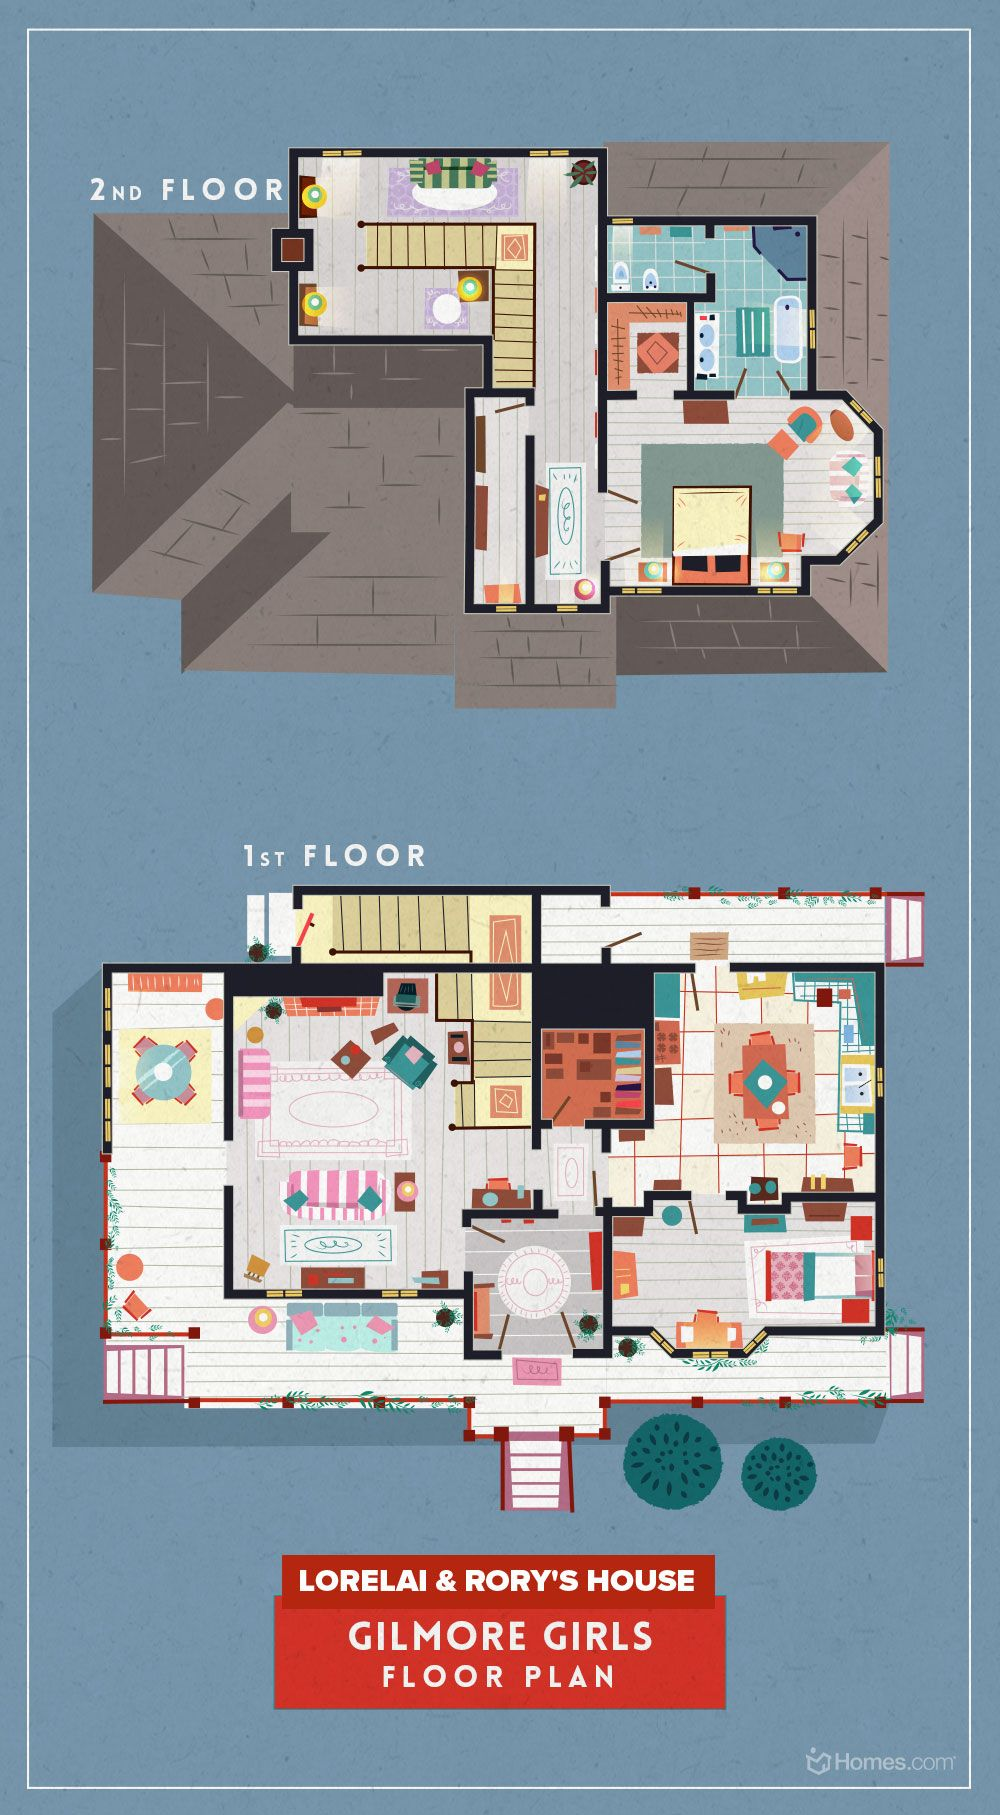 8 Home Floor Plans From Cult TV Shows